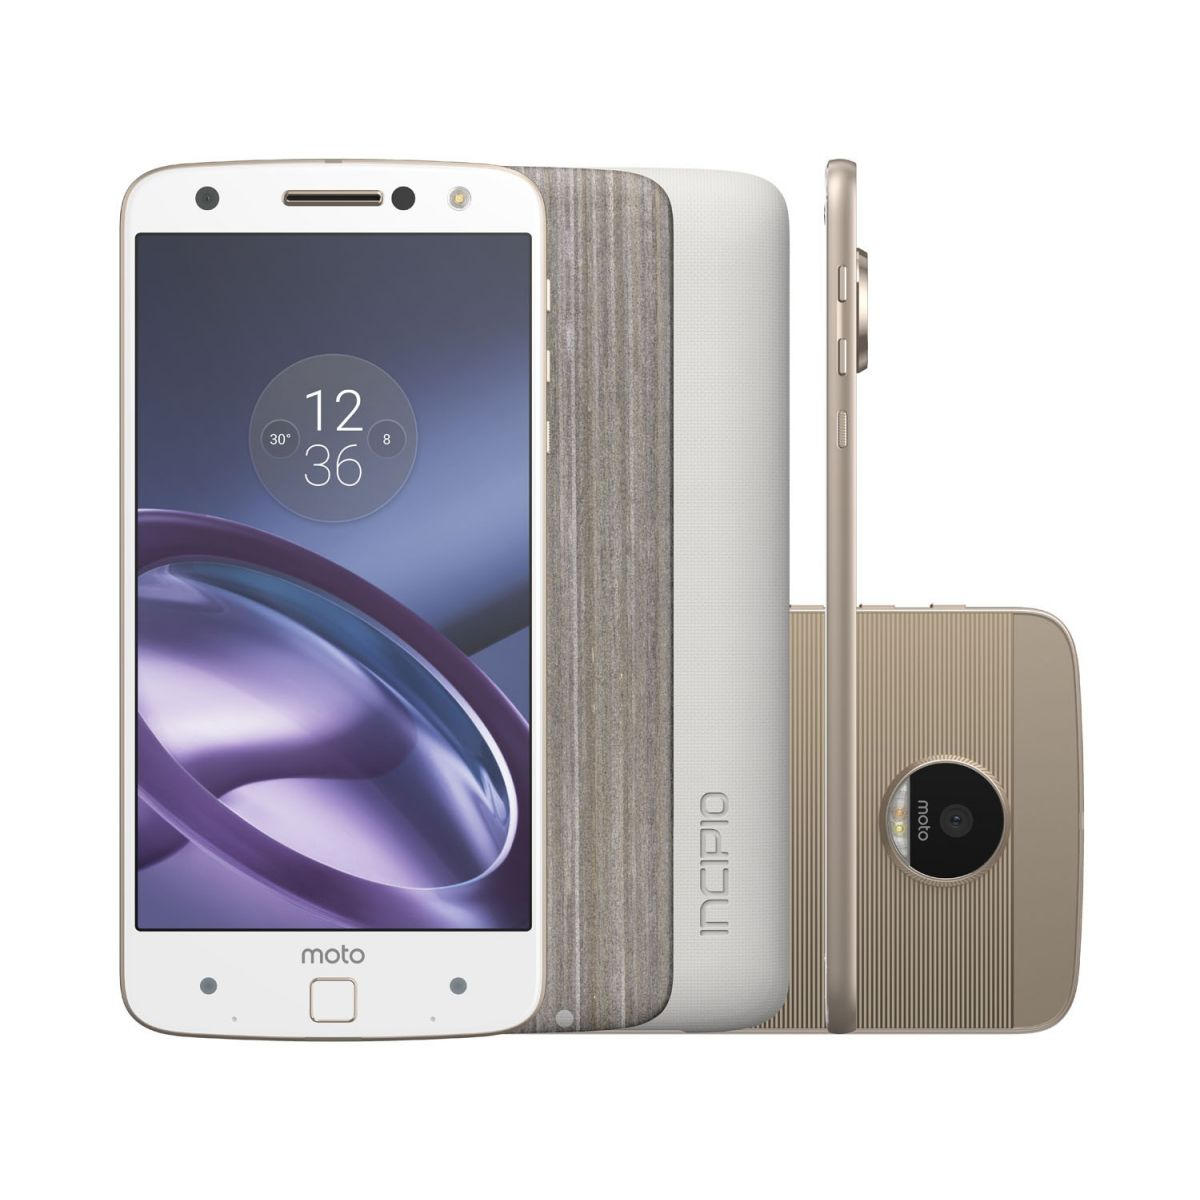 Smartphone Moto Z Power DC Edition 64GB Branco e Dourado Dual Chip 4G Câm. 13MP XT1650 - Motorola